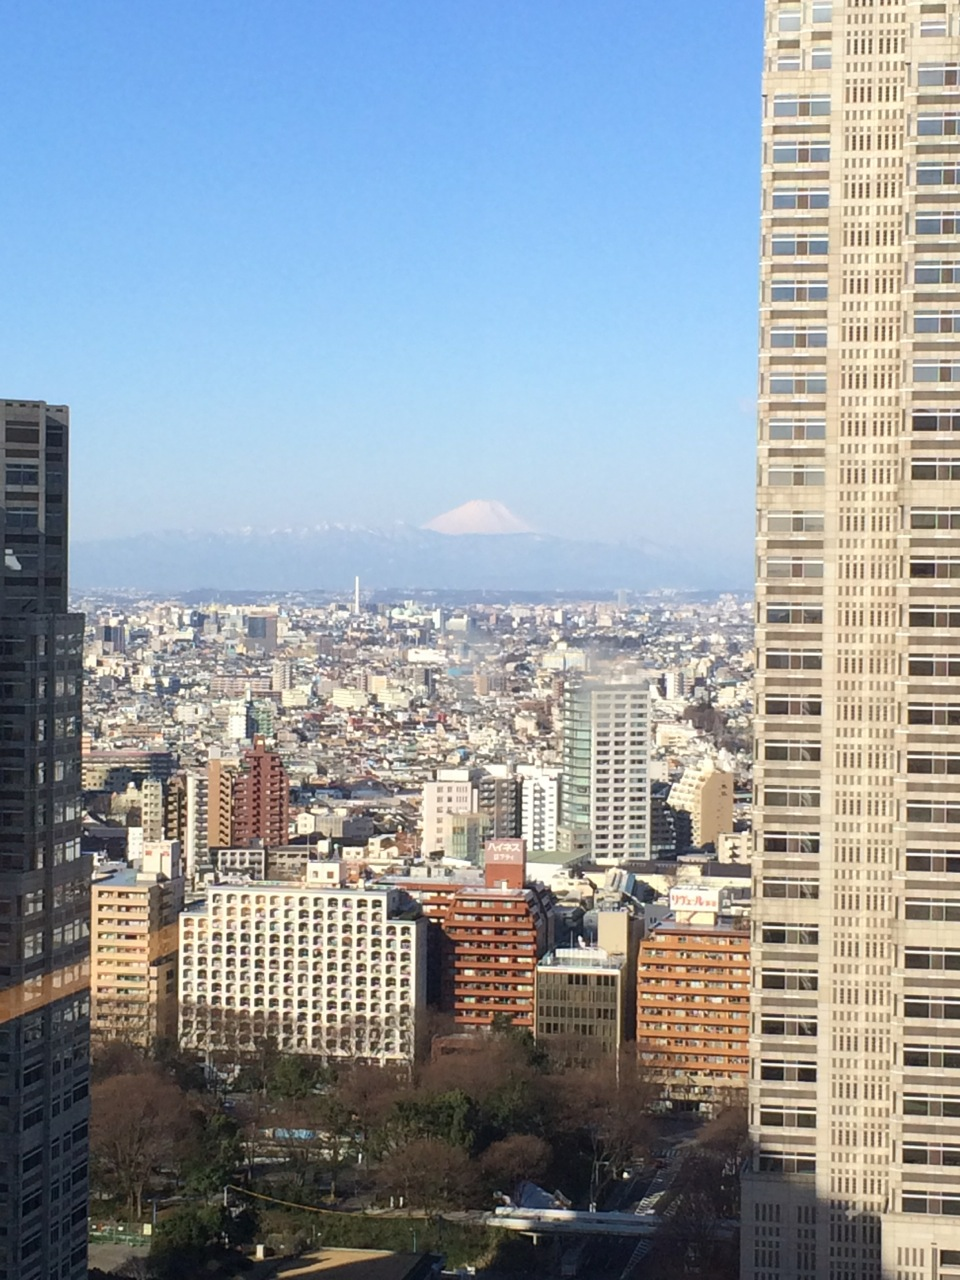 We were a little jet-lagged upon finally arriving at our hotel (after landing in Tokyo at 5am!) but were pleasantly surprised to have this view of Mt. Fuji from our window!